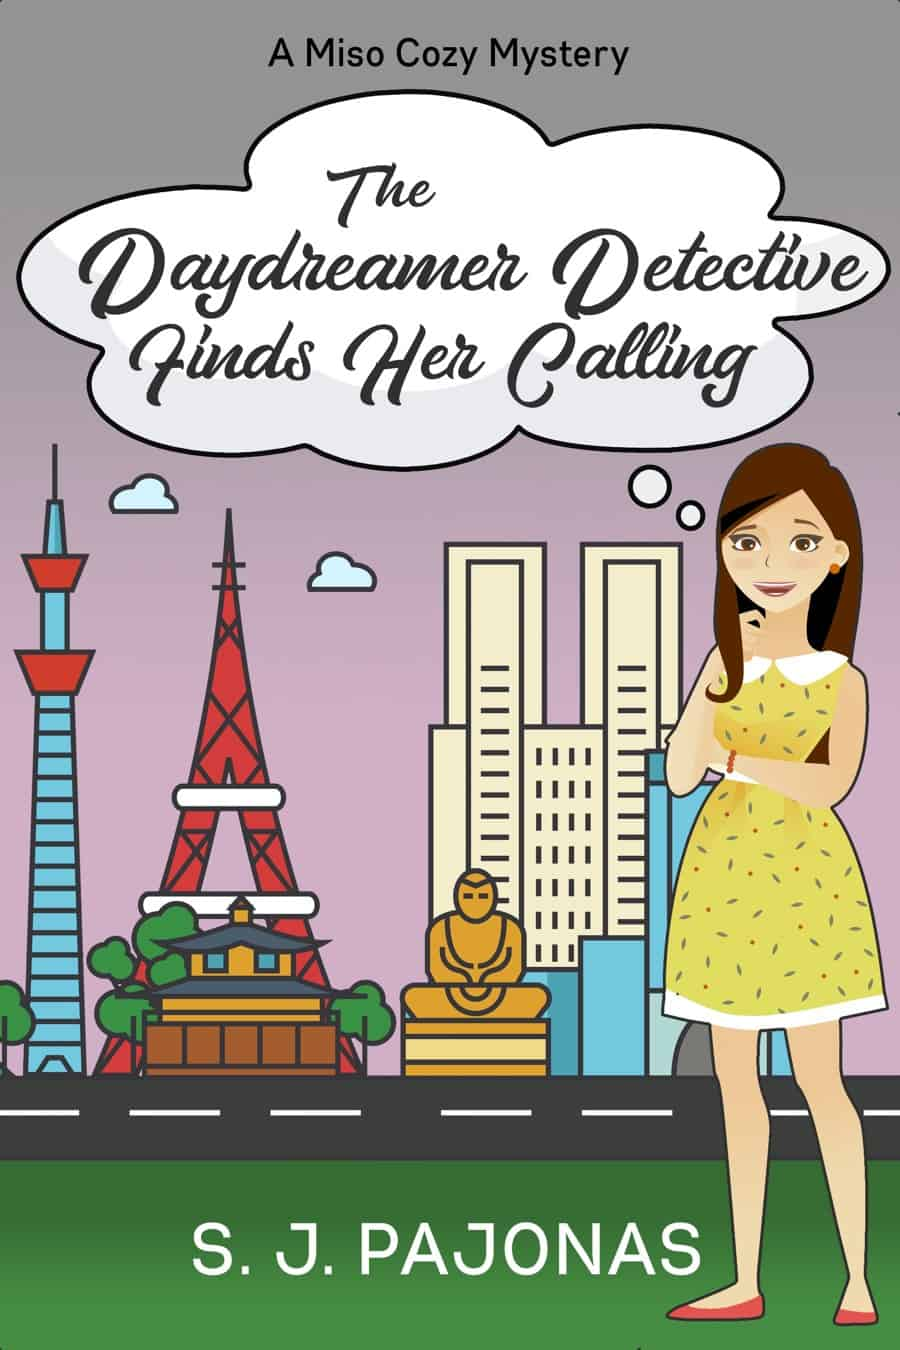 Pre-order THE DAYDREAMER DETECTIVE FINDS HER CALLING on Amazon, Apple Books, Nook, Kobo, and Google Play and get this next installment in the Miso Cozy Mysteries series on March 29, 2019!